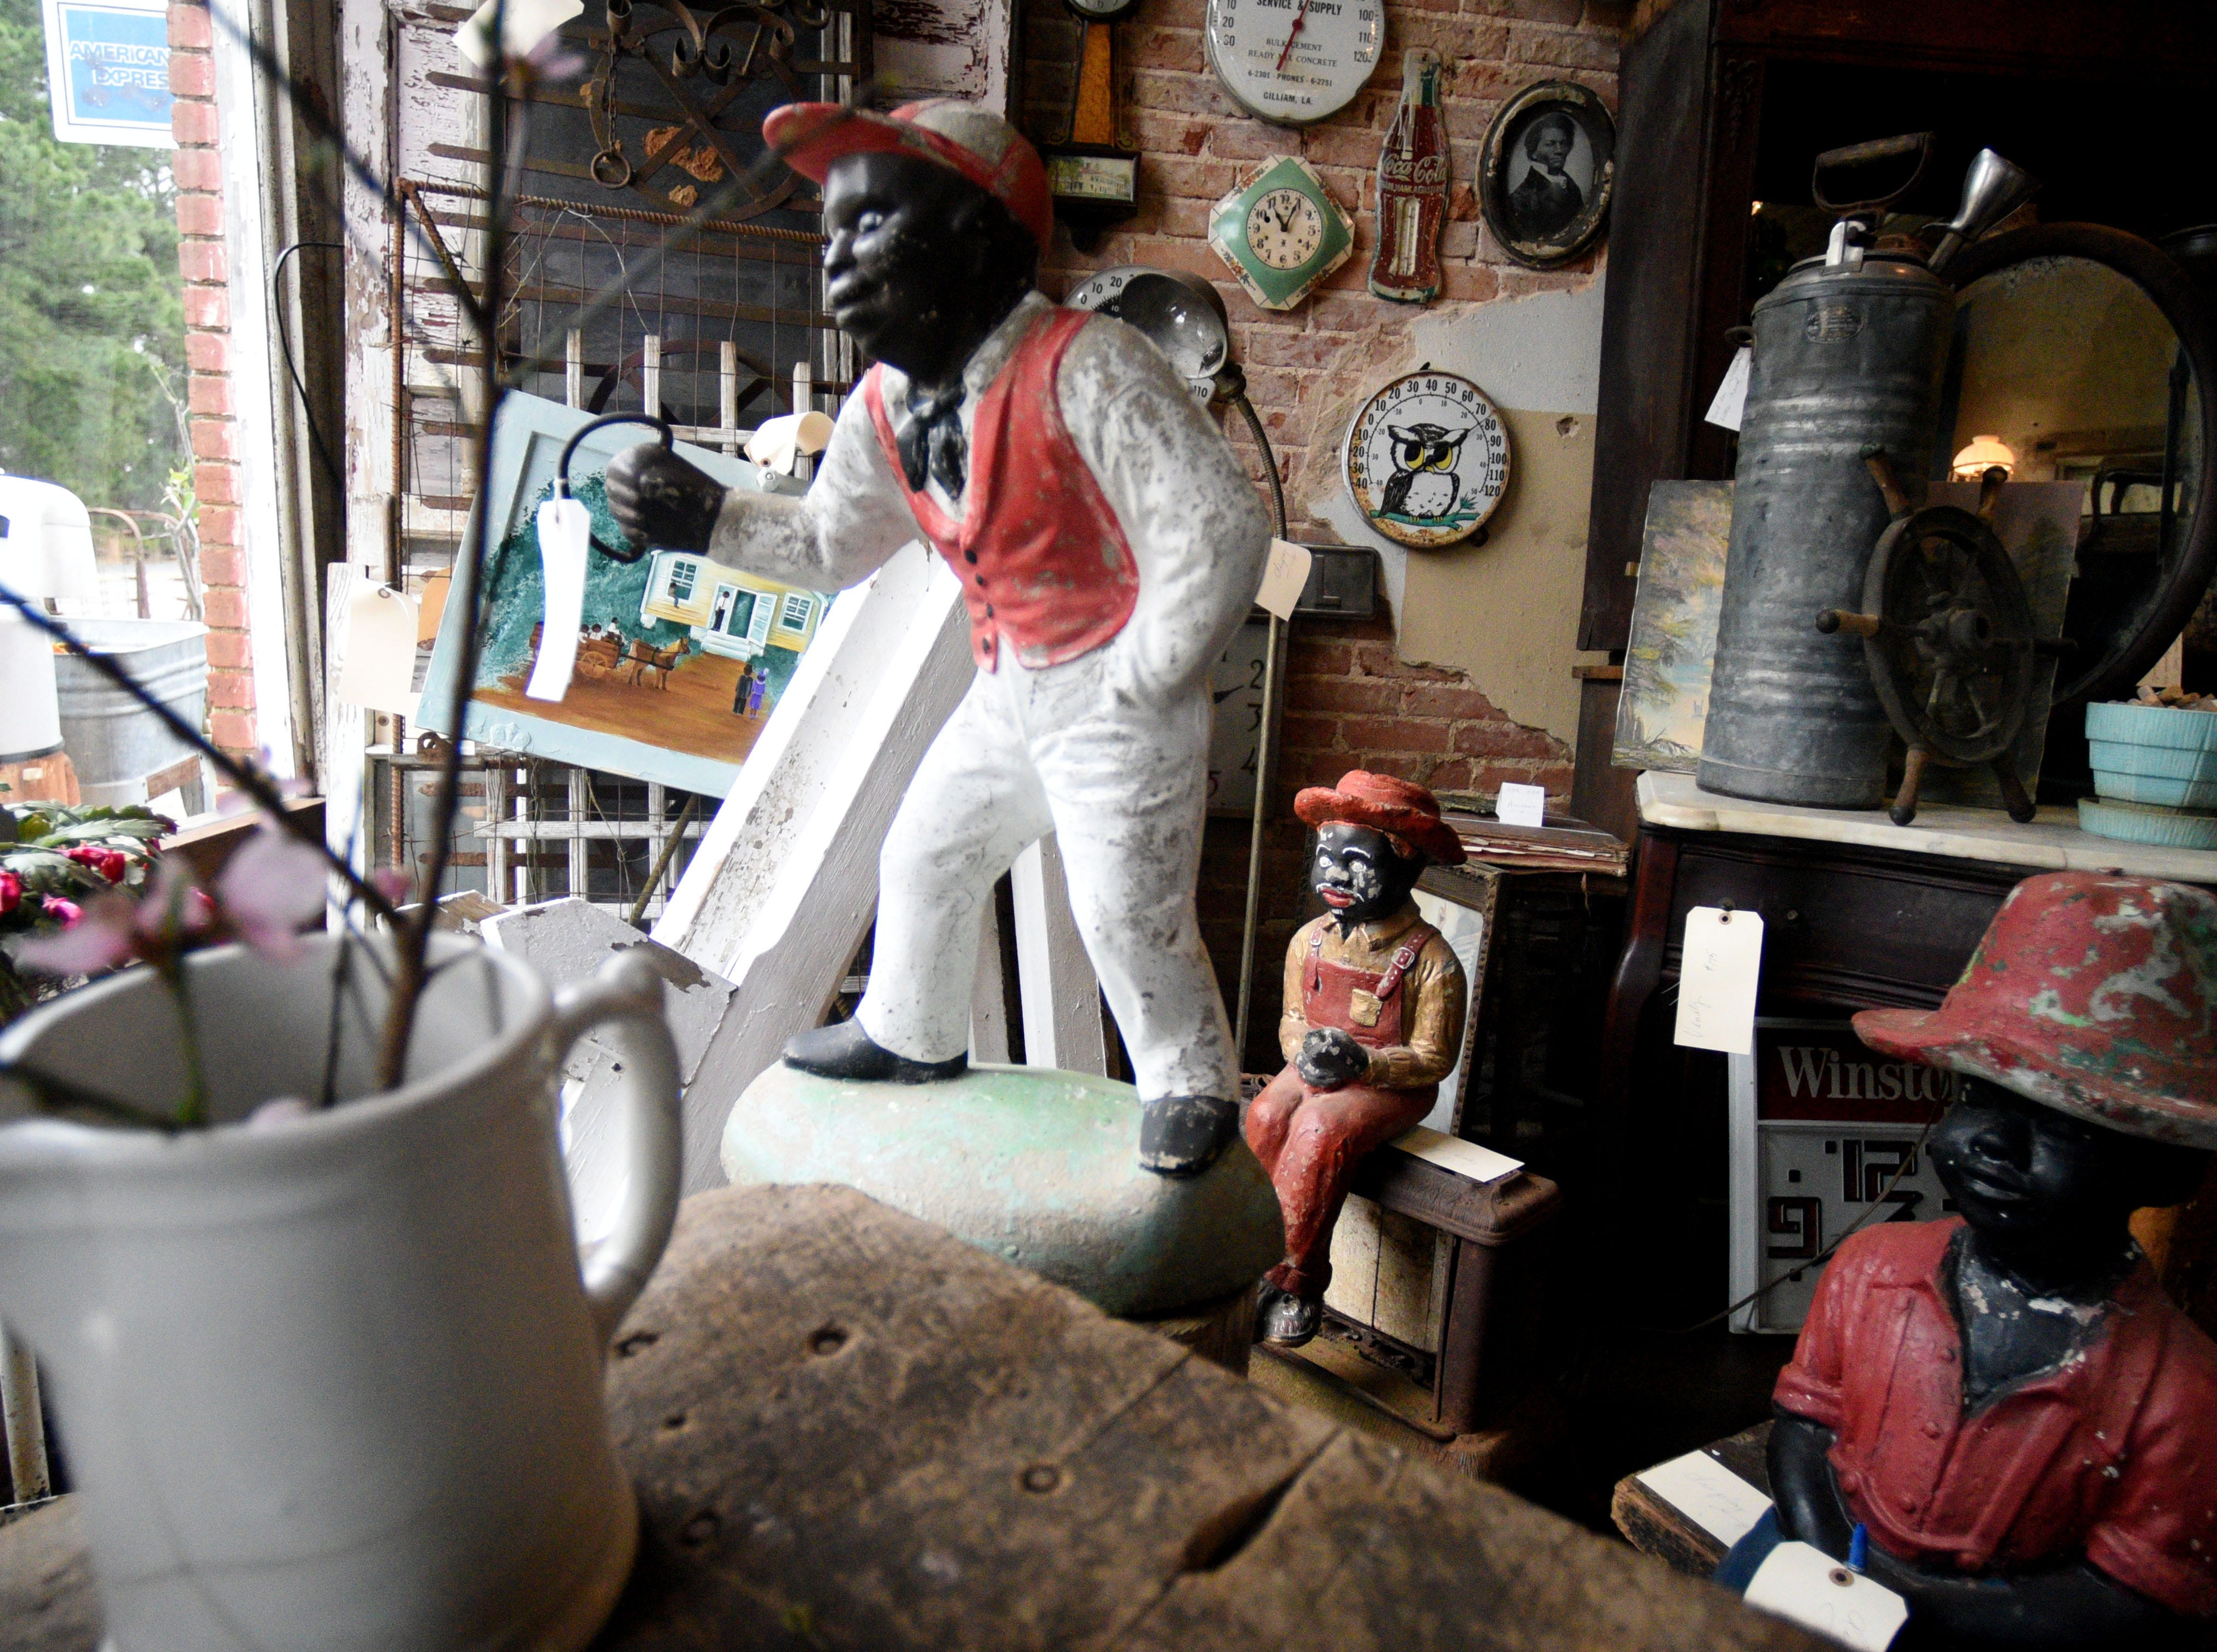 Big Mama's Antiques and Restoration in Hosston, Louisiana.